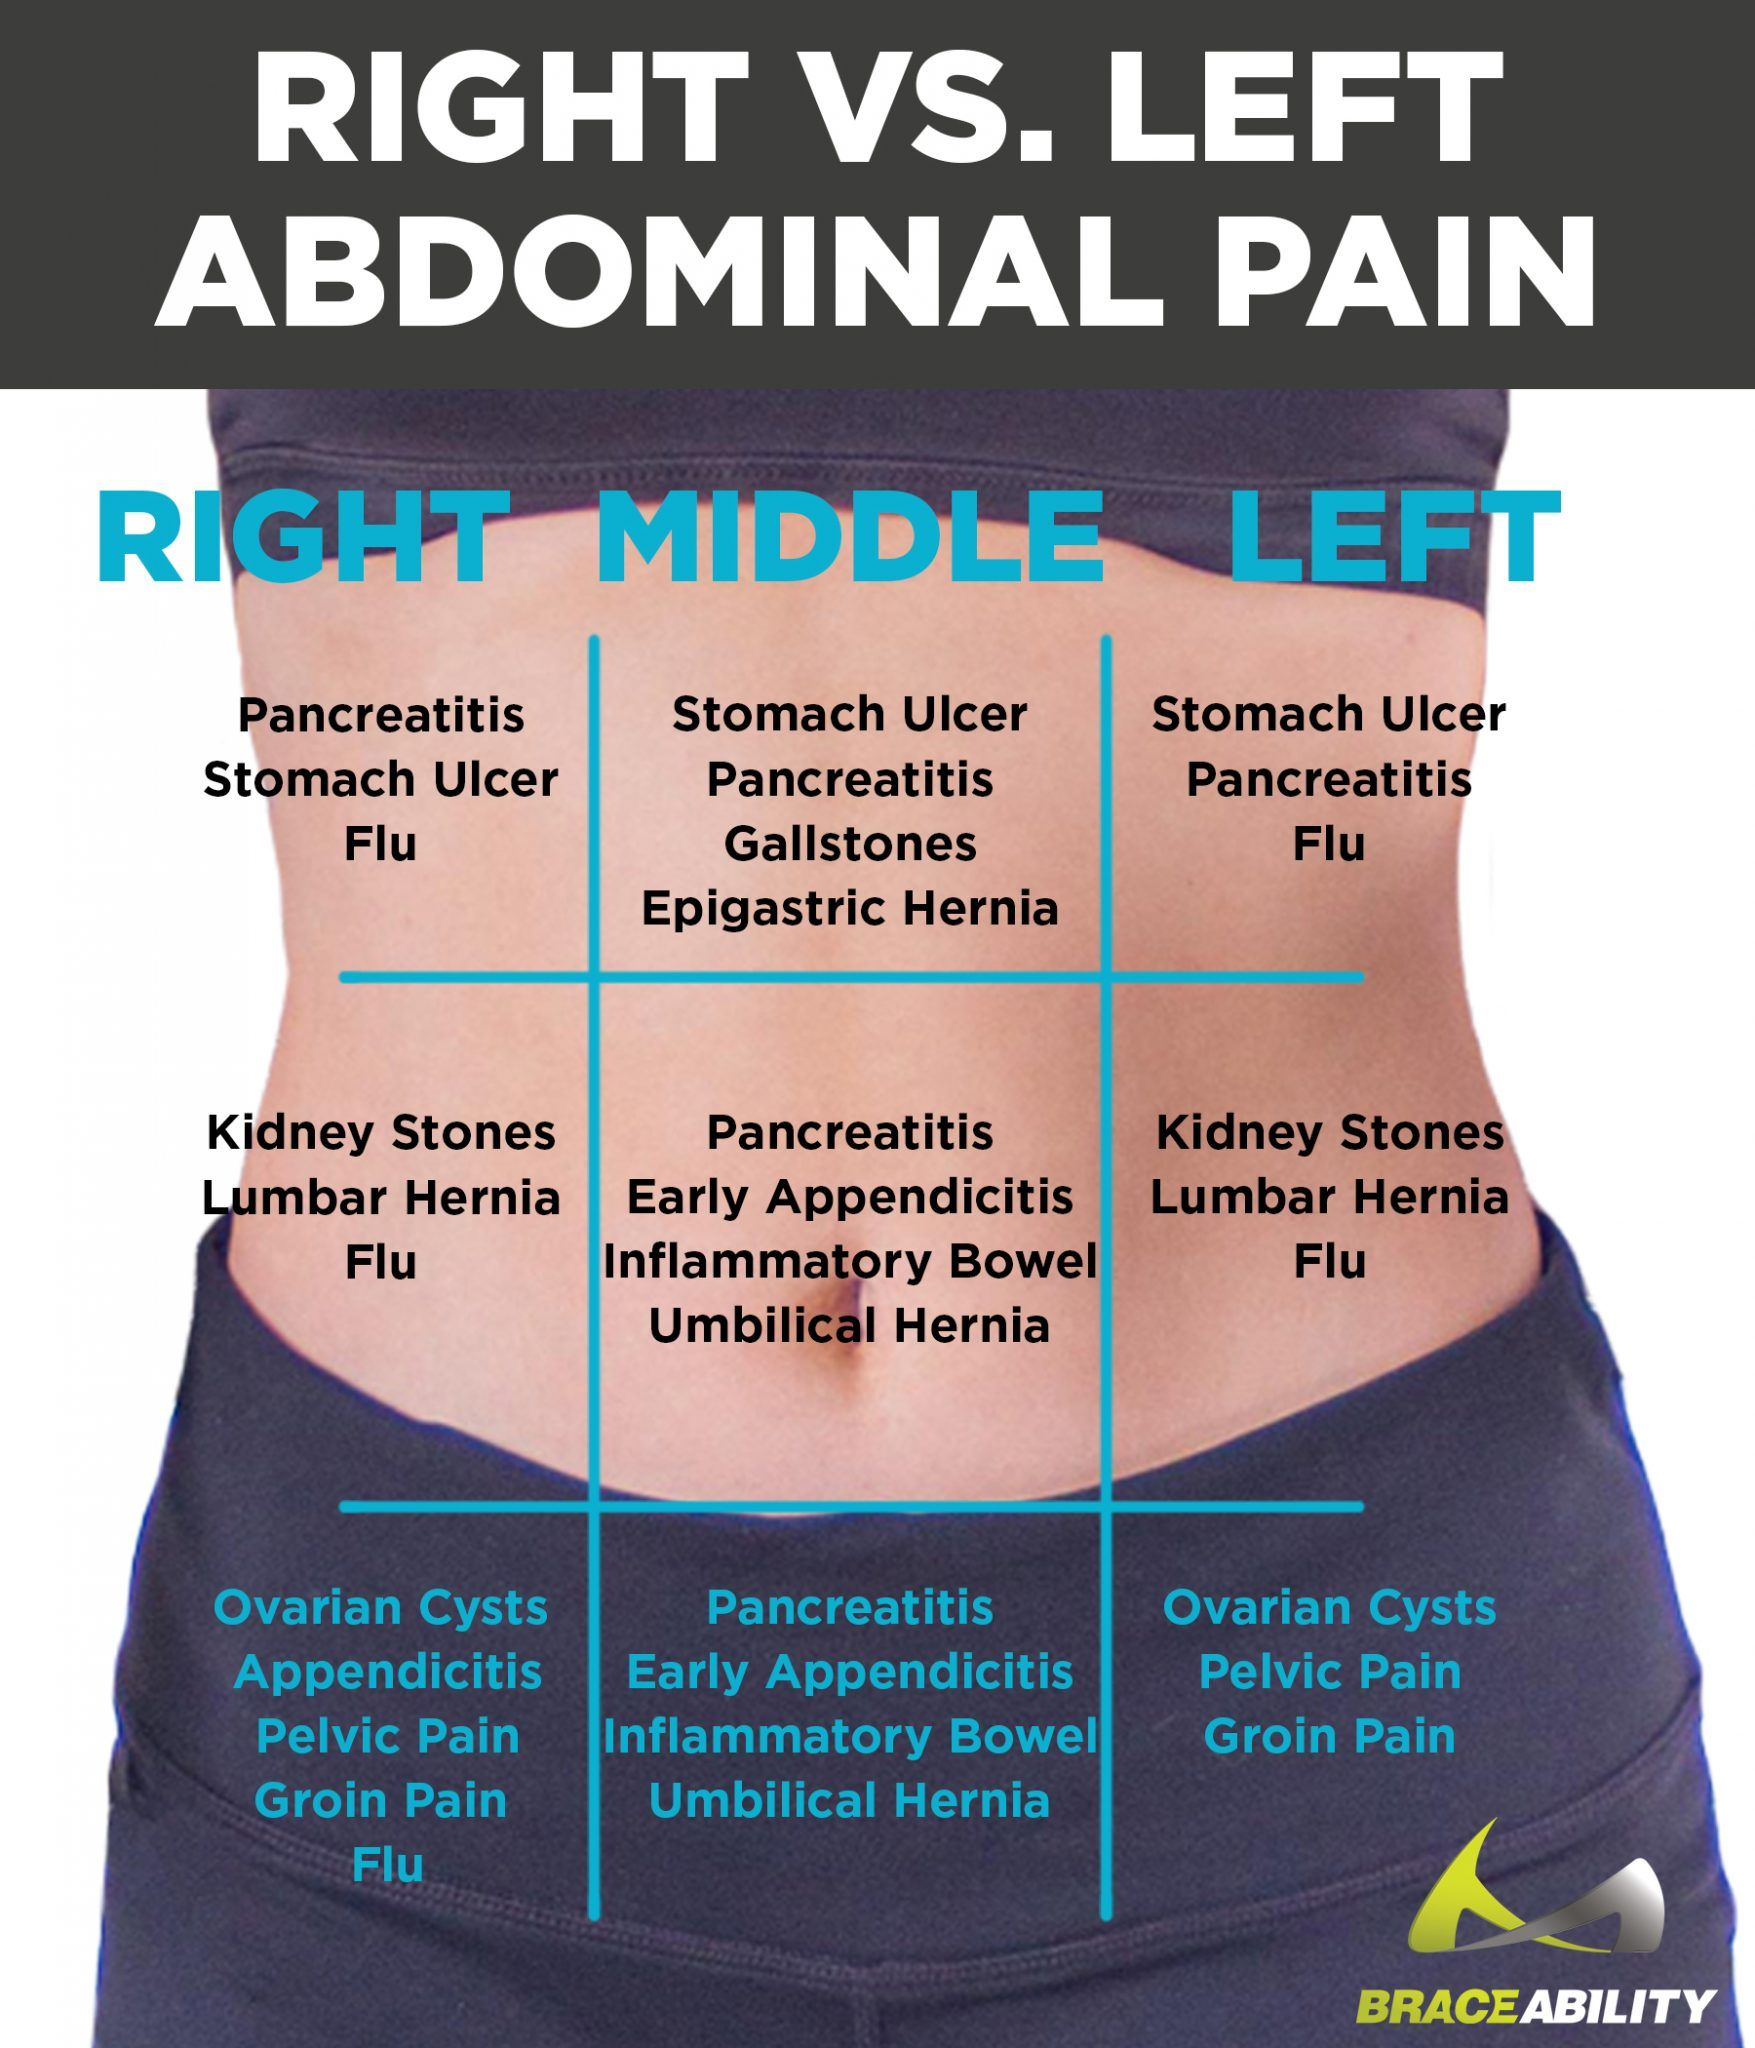 Lower Right Abdominal Pain When You Have An Ovarian Cyst?